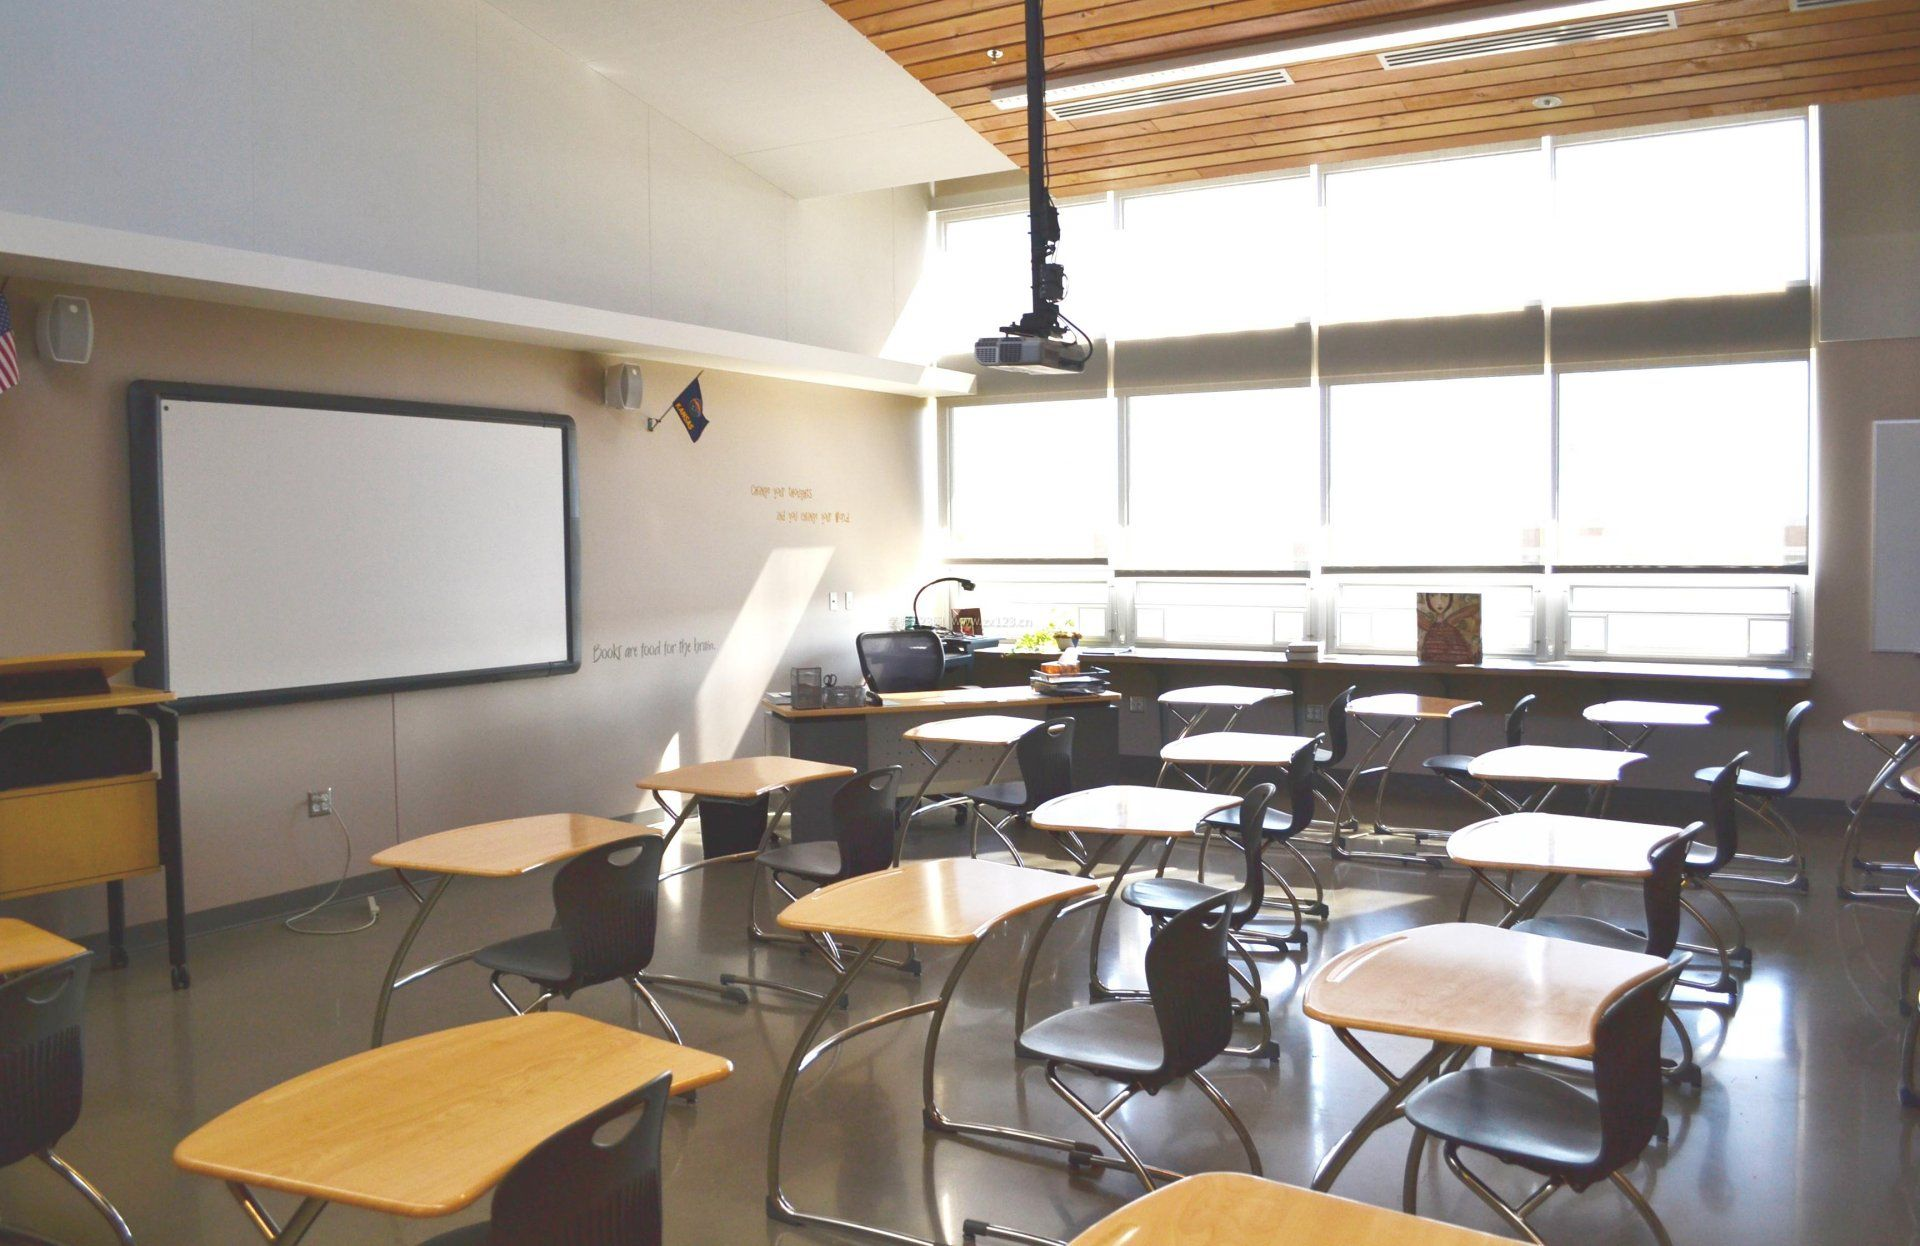 Design Ideas For Classroom